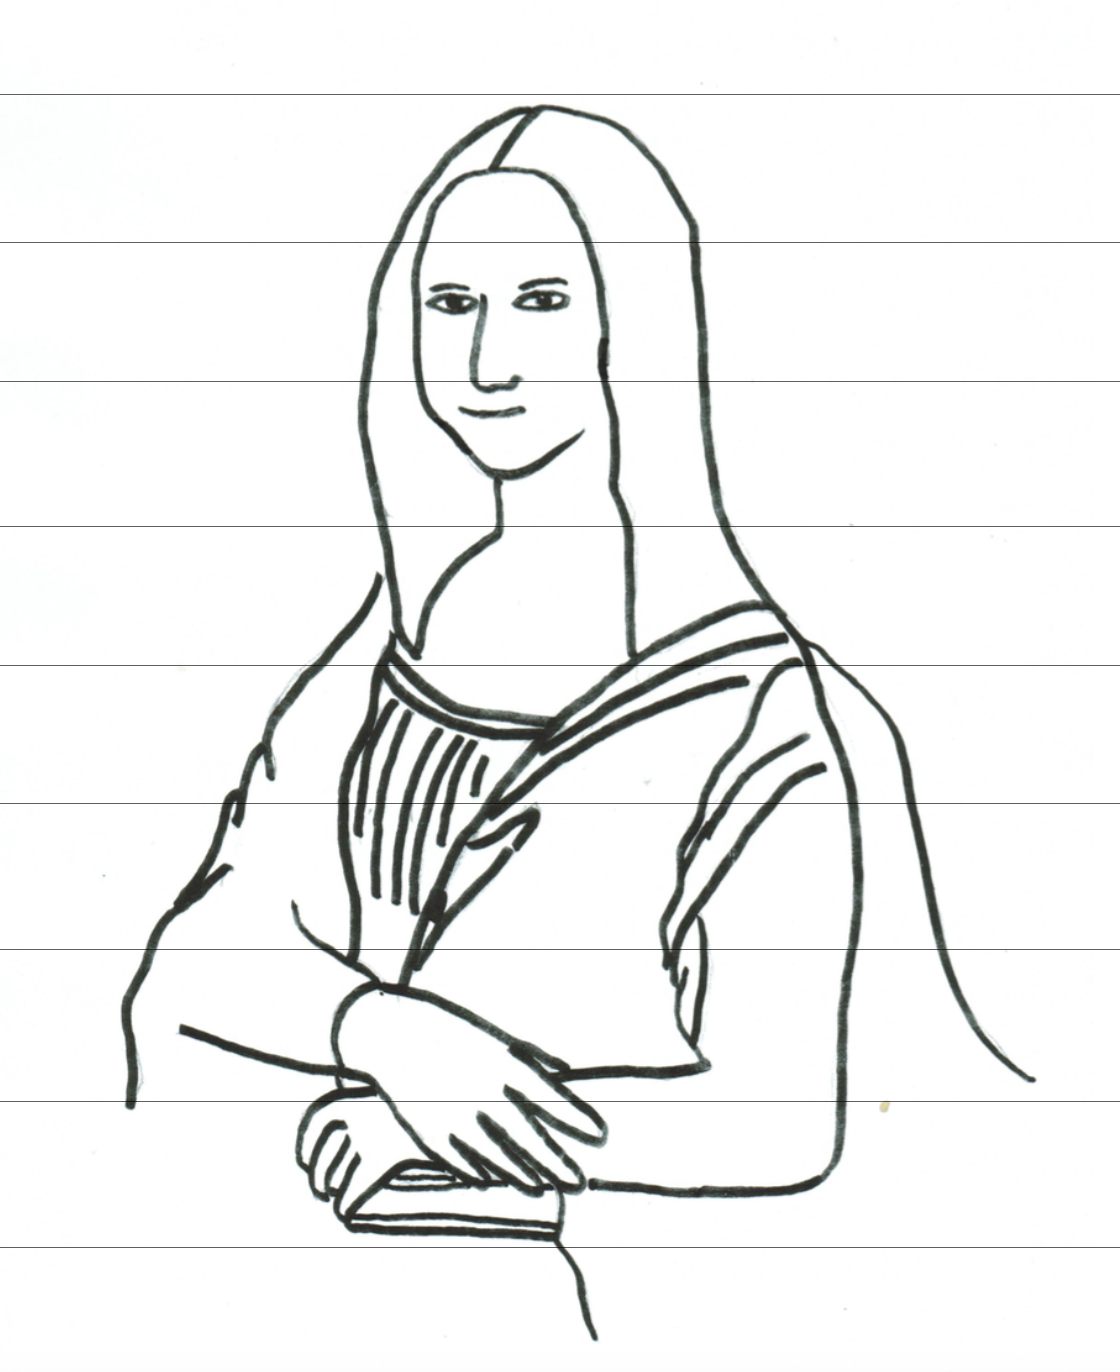 1120x1372 Mona Lisa Outline Drawings Line Drawing Mona Lisa